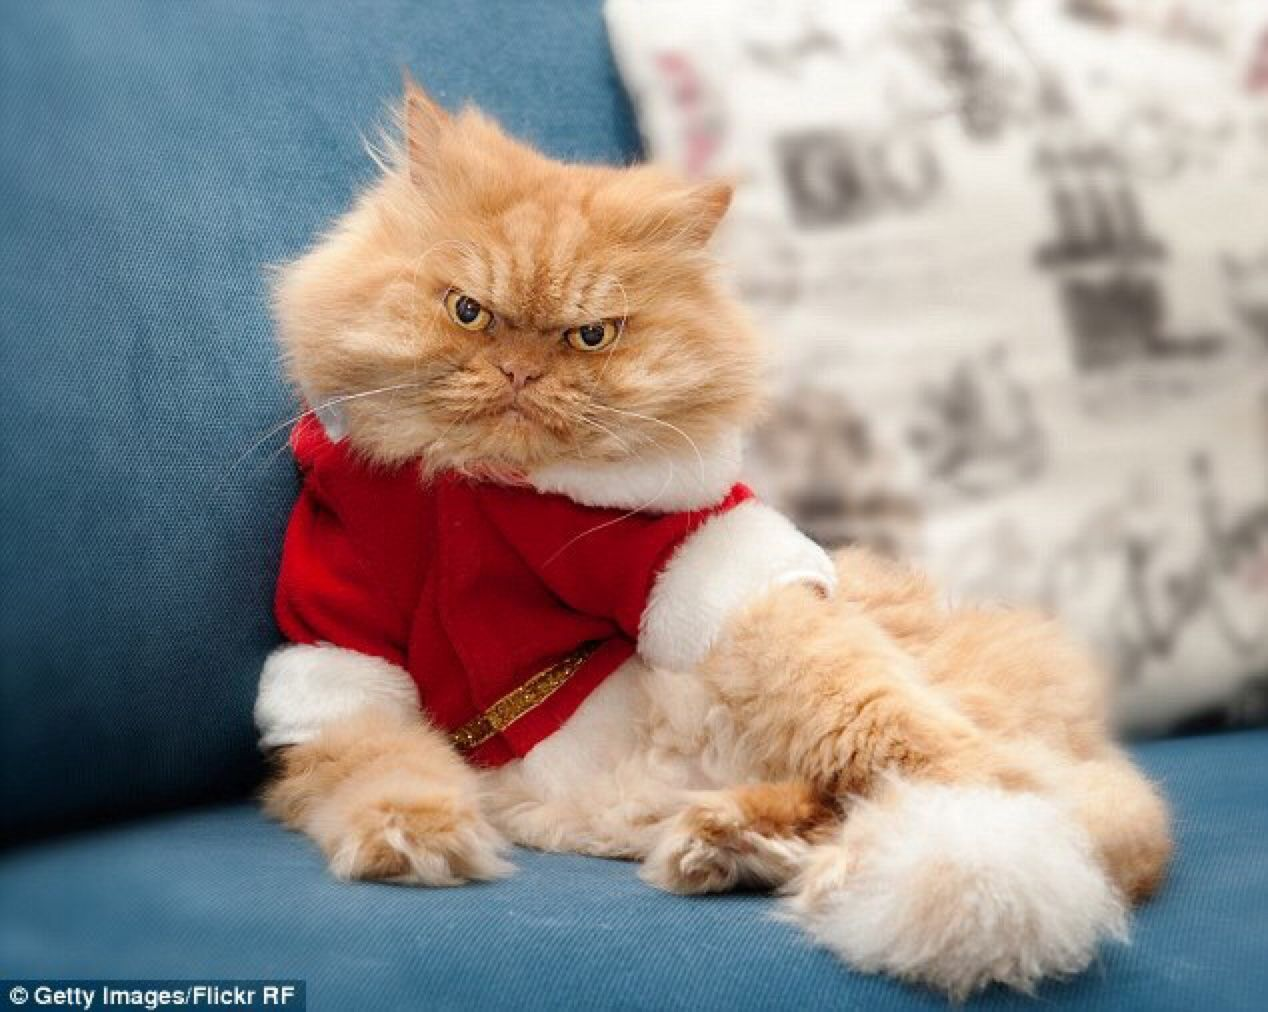 Garfi Aka Angry Cat Memes Cat Memes Grumpy Cat Garfi - Meet the ridiculously fluffy kitty thats more cloud than cat